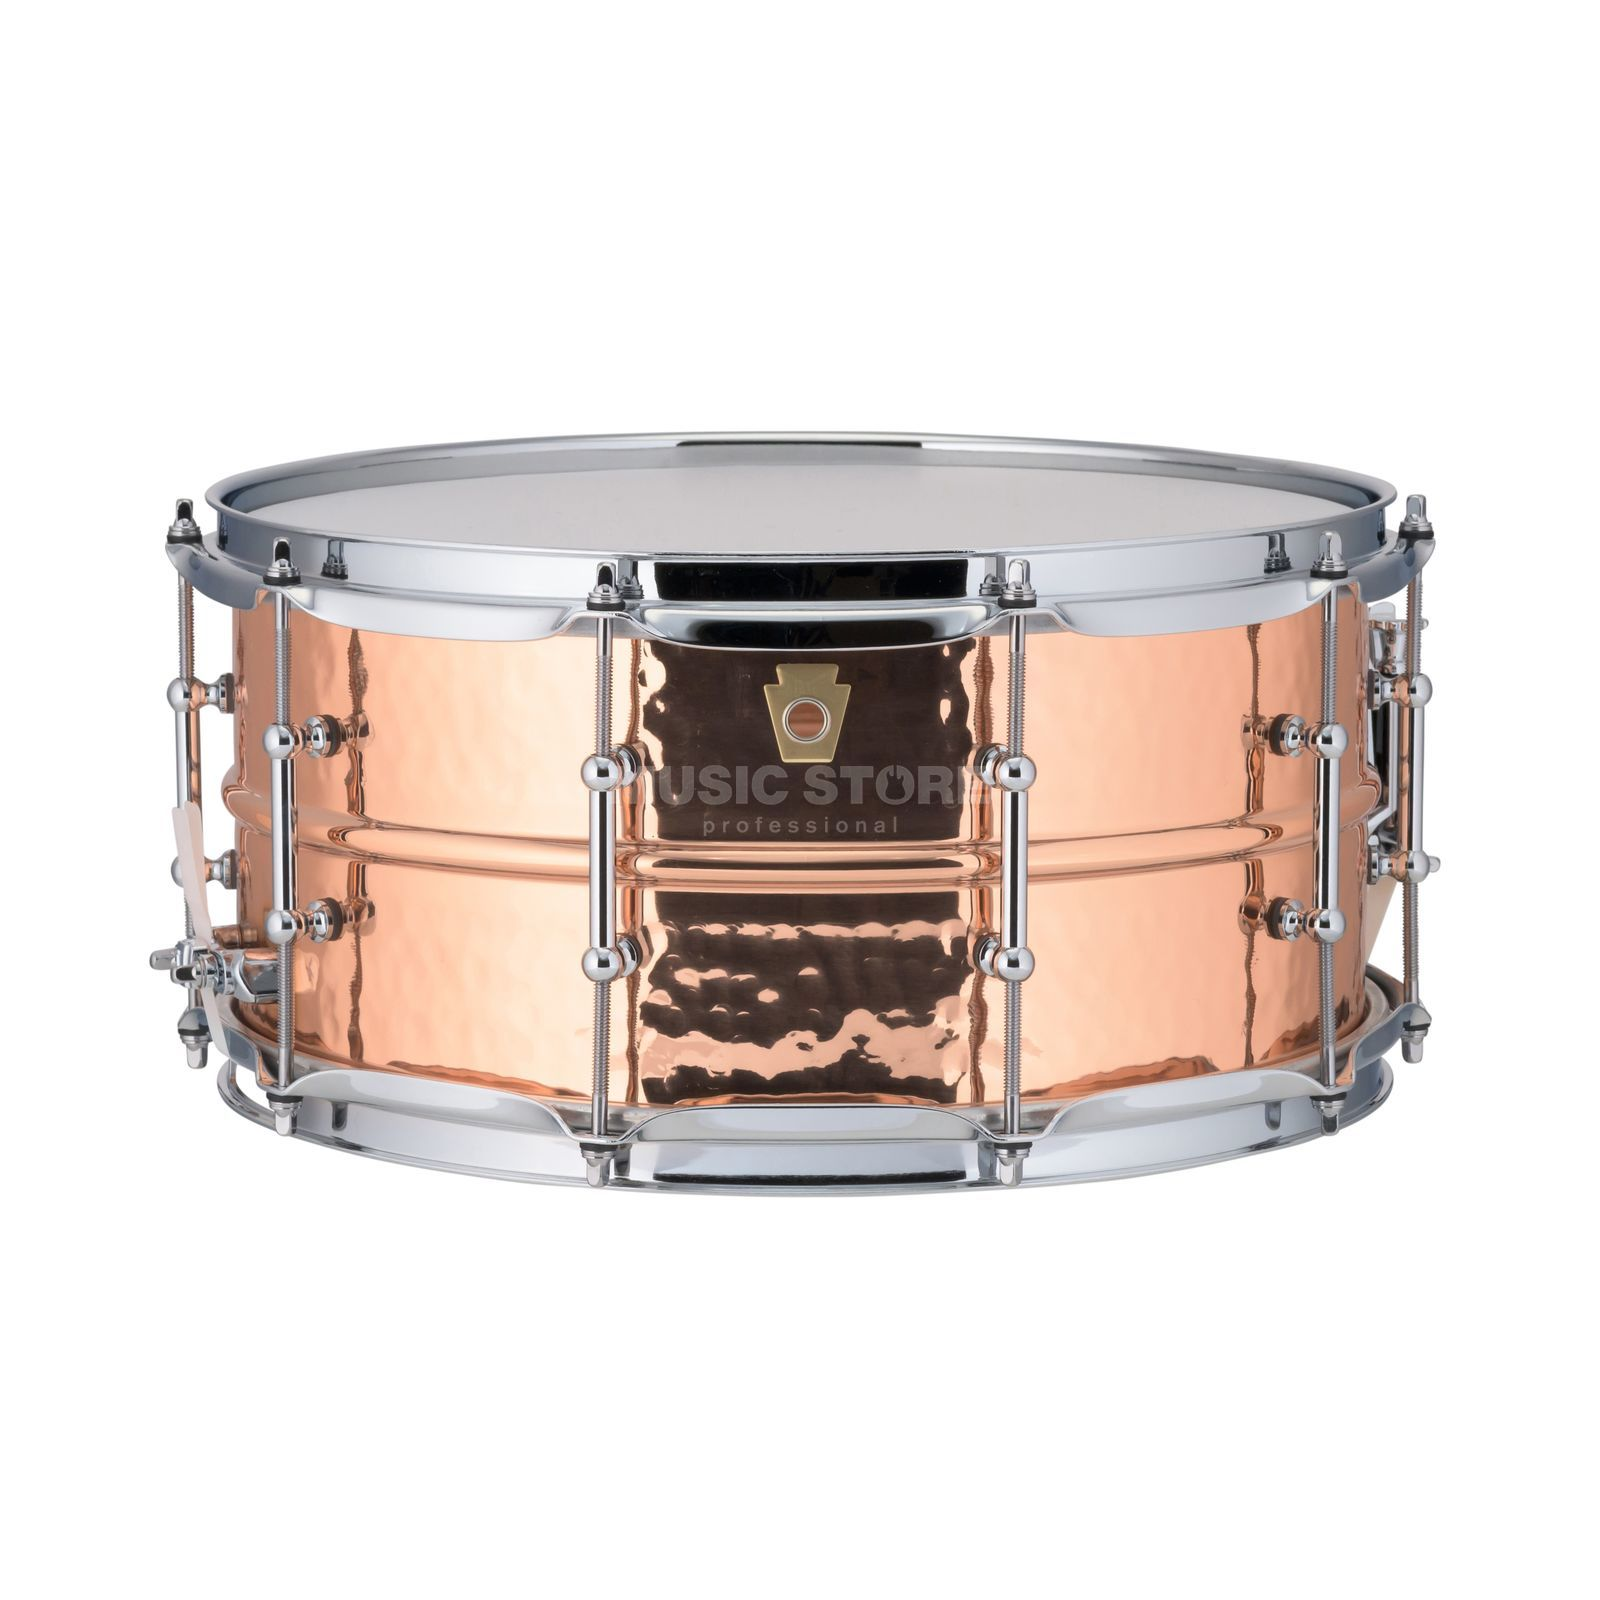 "Ludwig Copper Phonic Snare LC662T, 14""x6,5"", Smooth Copper Produktbild"